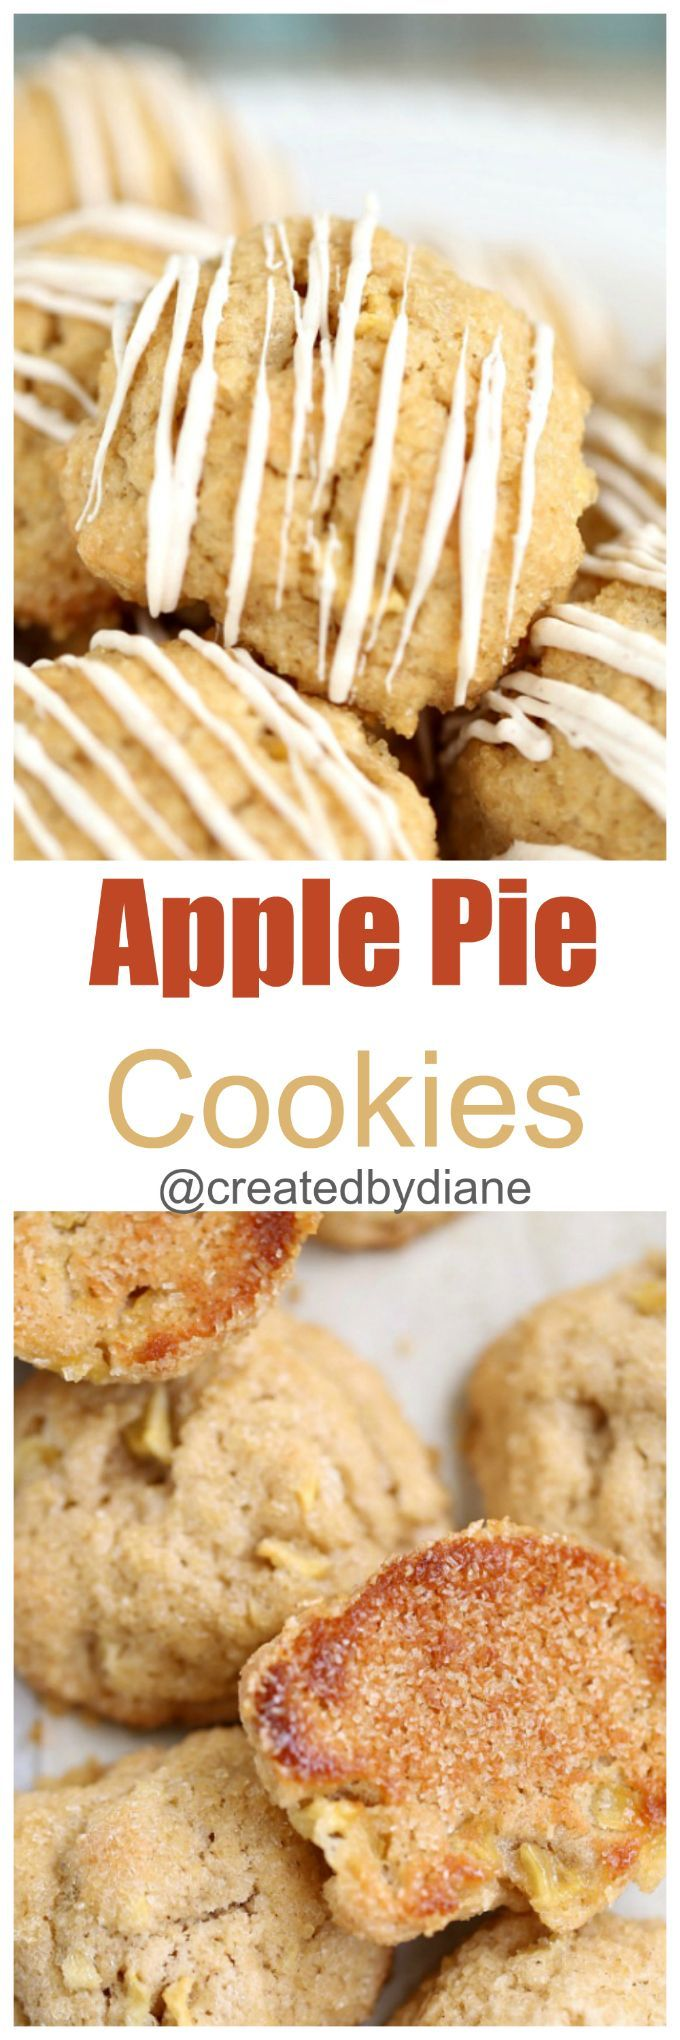 apple-pie-cookies are THE thing to make, they are easier than pie and only take 1 apple to make and are ready quickly, the caramelized sugar bottoms taste like pie crust, these are insanely delicious. @createdbydiane